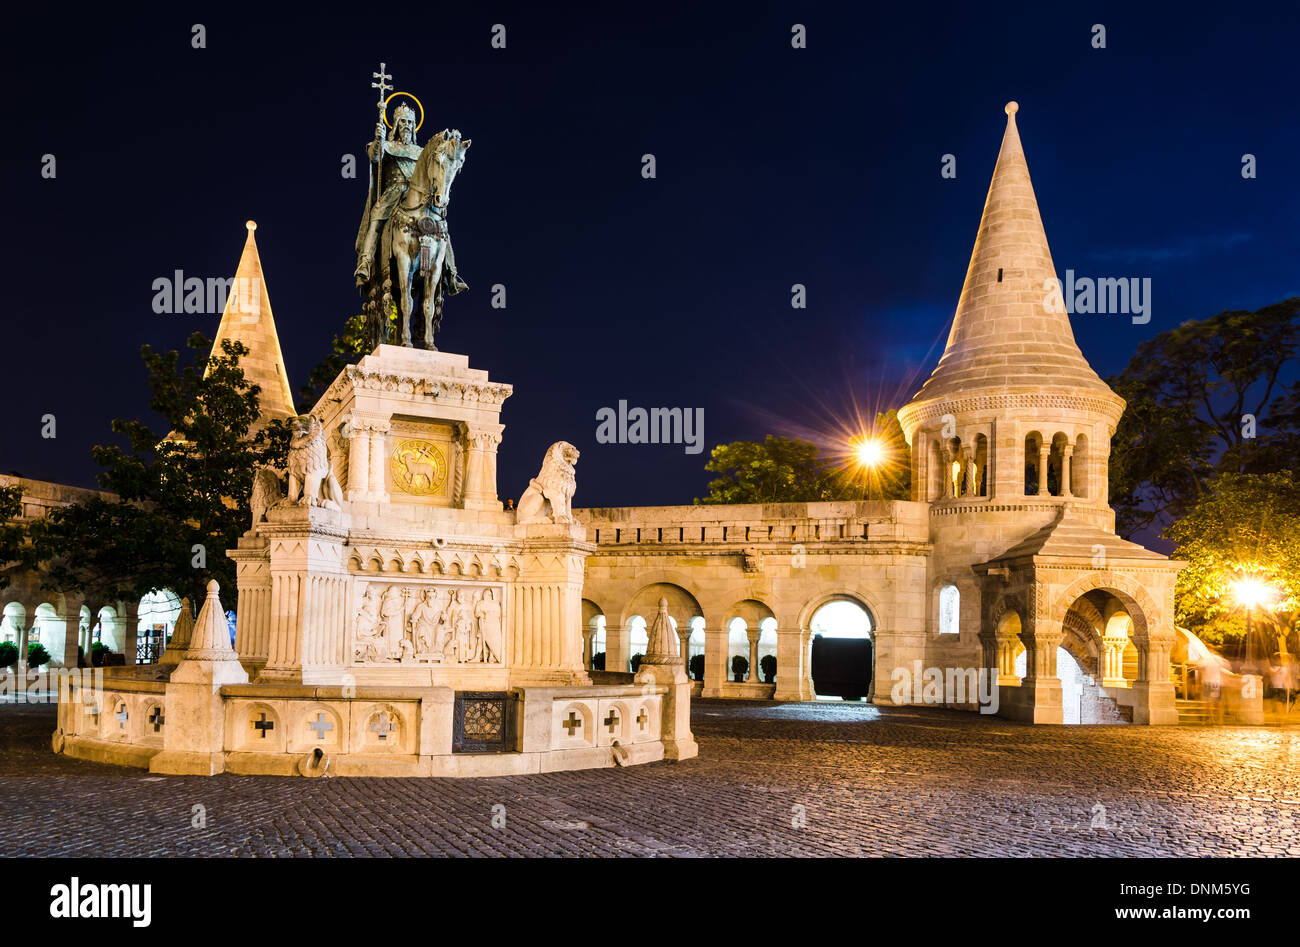 Equestrian statue and monument of Saint Stephen, erected in 1906 by architect Frigyes Schulek in Budapest, Hungary - Stock Image